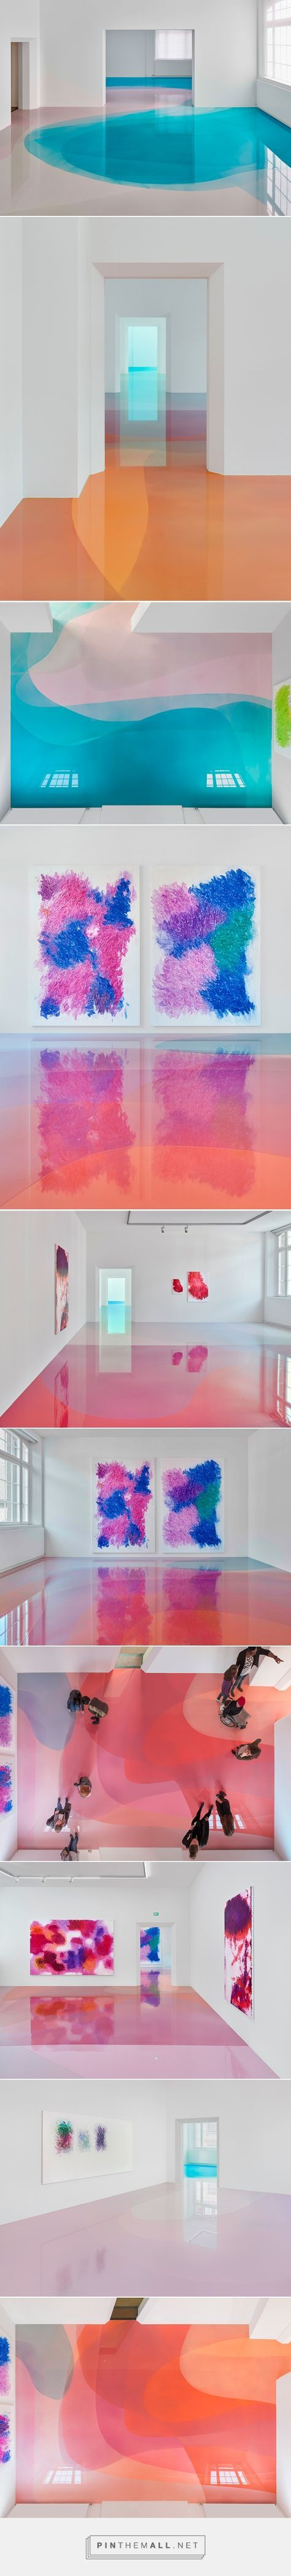 peter zimmermann floods freiburg museum with glossy pools of resin - created via https://pinthemall.net